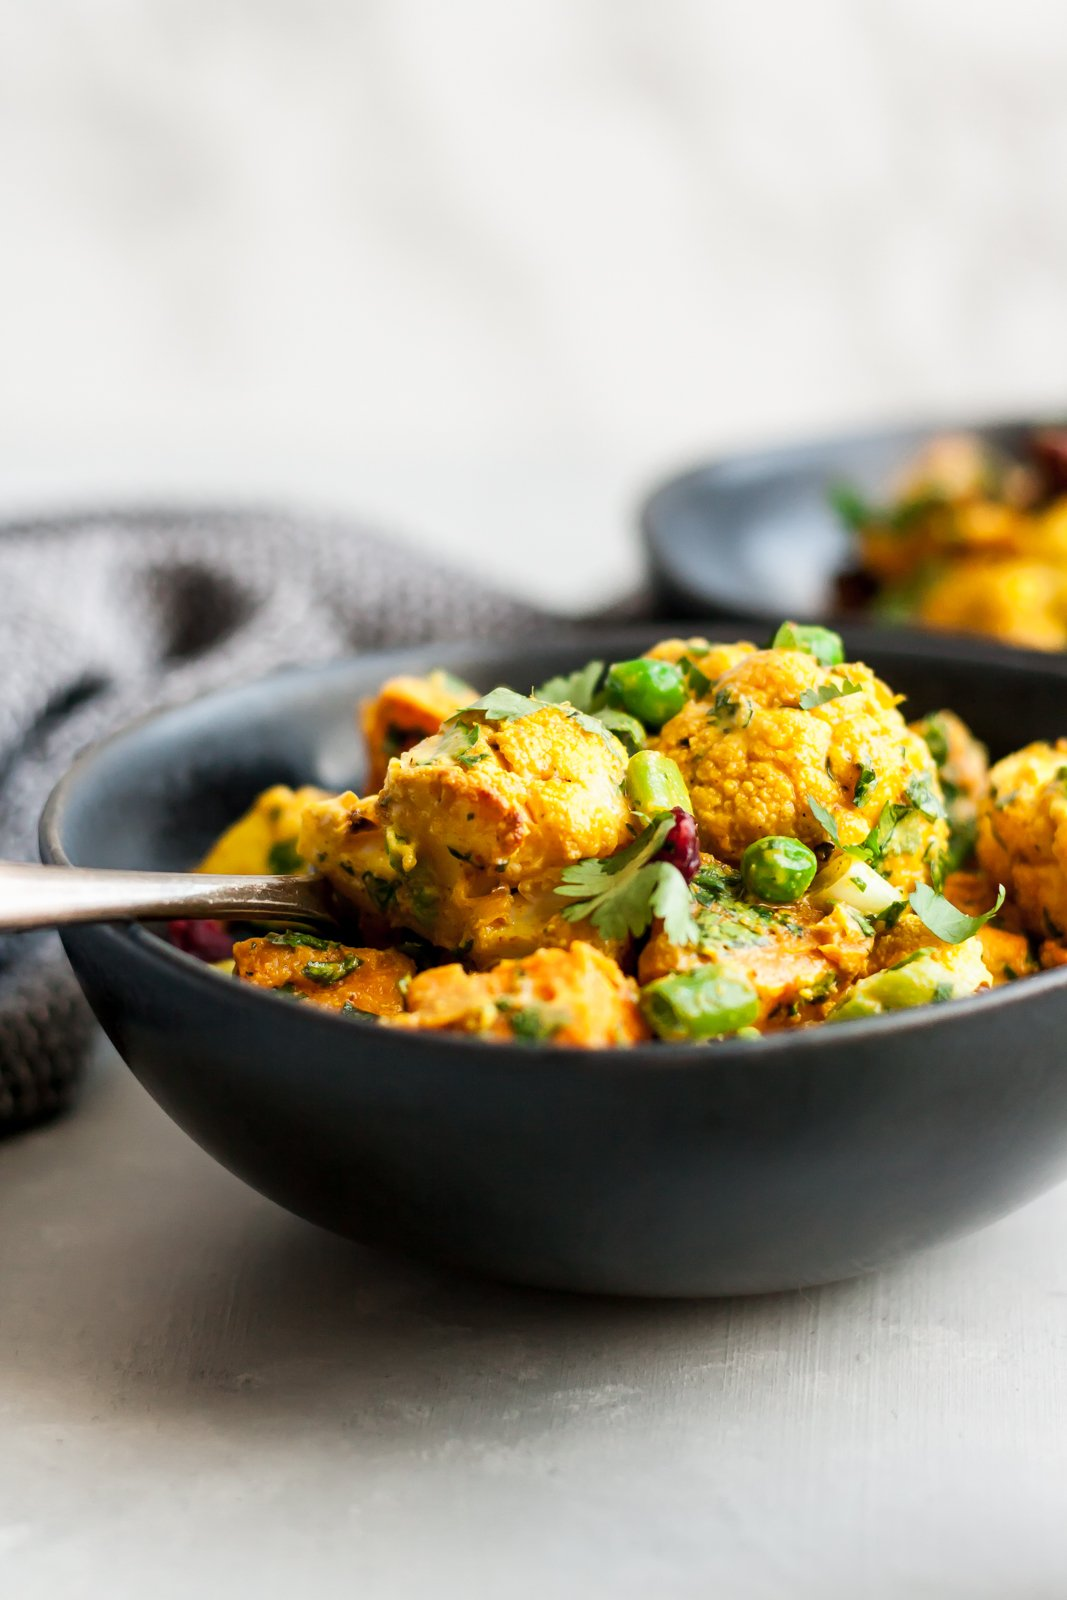 Vegan and gluten free curry roasted cauliflower sweet potato salad with a creamy curry tahini dressing. This salad is everything you could ever want. Easy to make, packed with veggies and absolutely addicting!